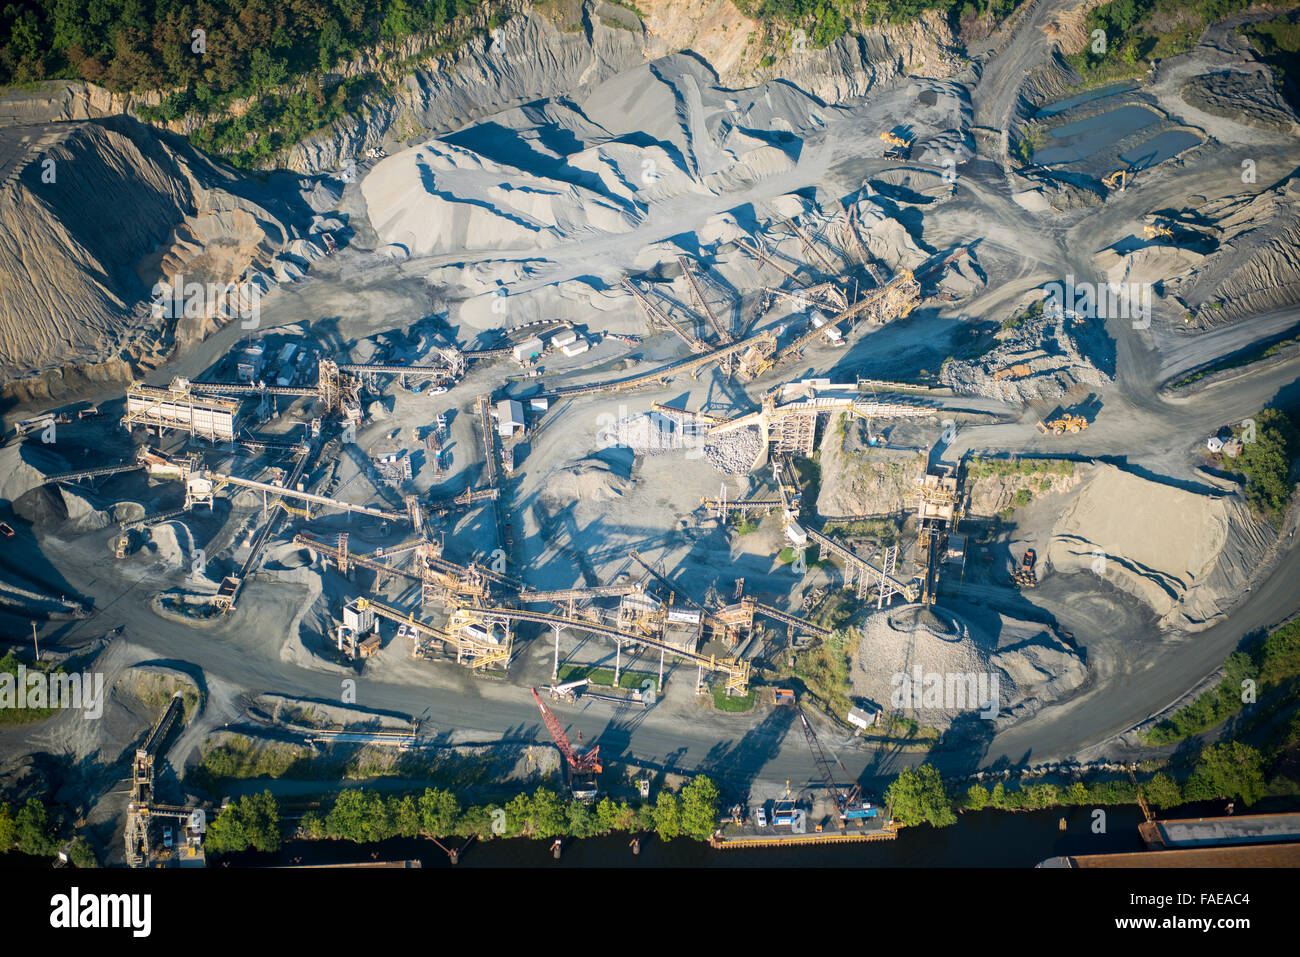 Aerial view of a quarry in Harford County, Maryland - Stock Image